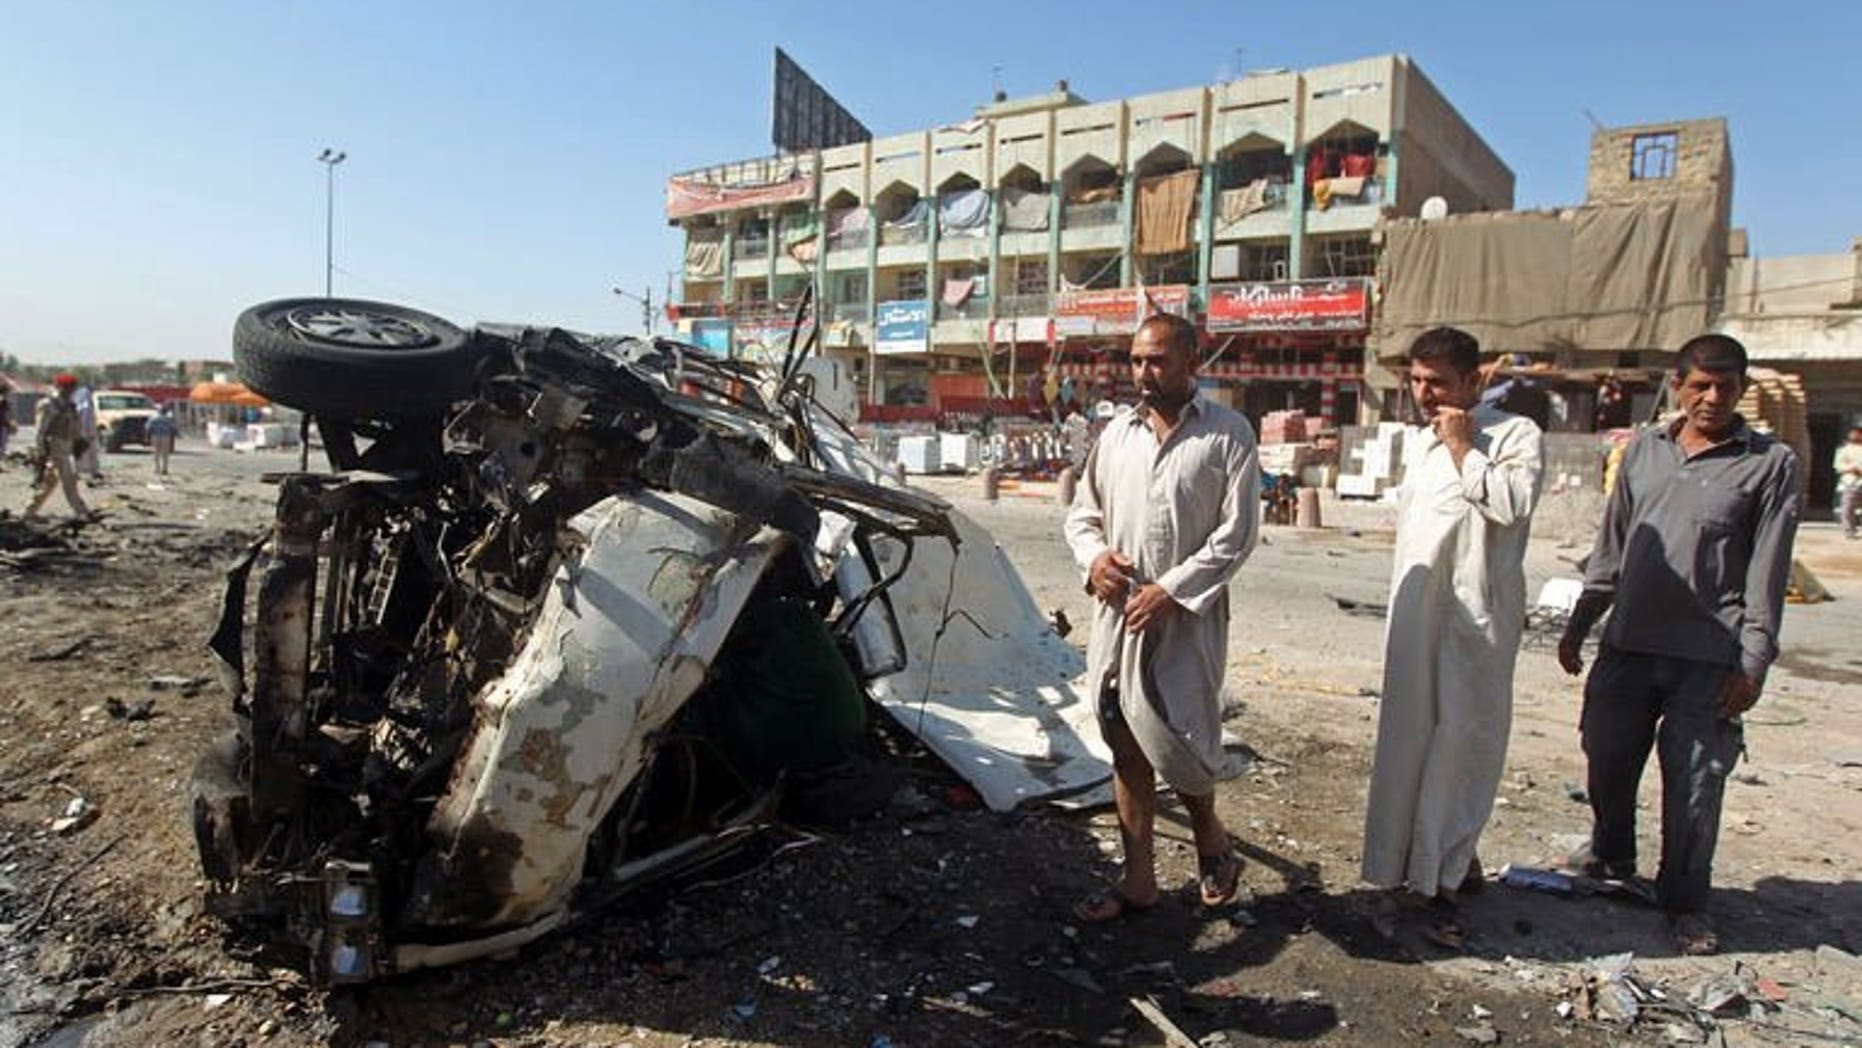 Iraqis inspect the site of a car bomb explosion in the impoverished district of Sadr City in Baghdad on July 29, 2013. Iraqi security forces hunted for militants and weapons in the Baghdad area on Sunday, while attacks killed six people, including three soldiers and a judge, officials said.